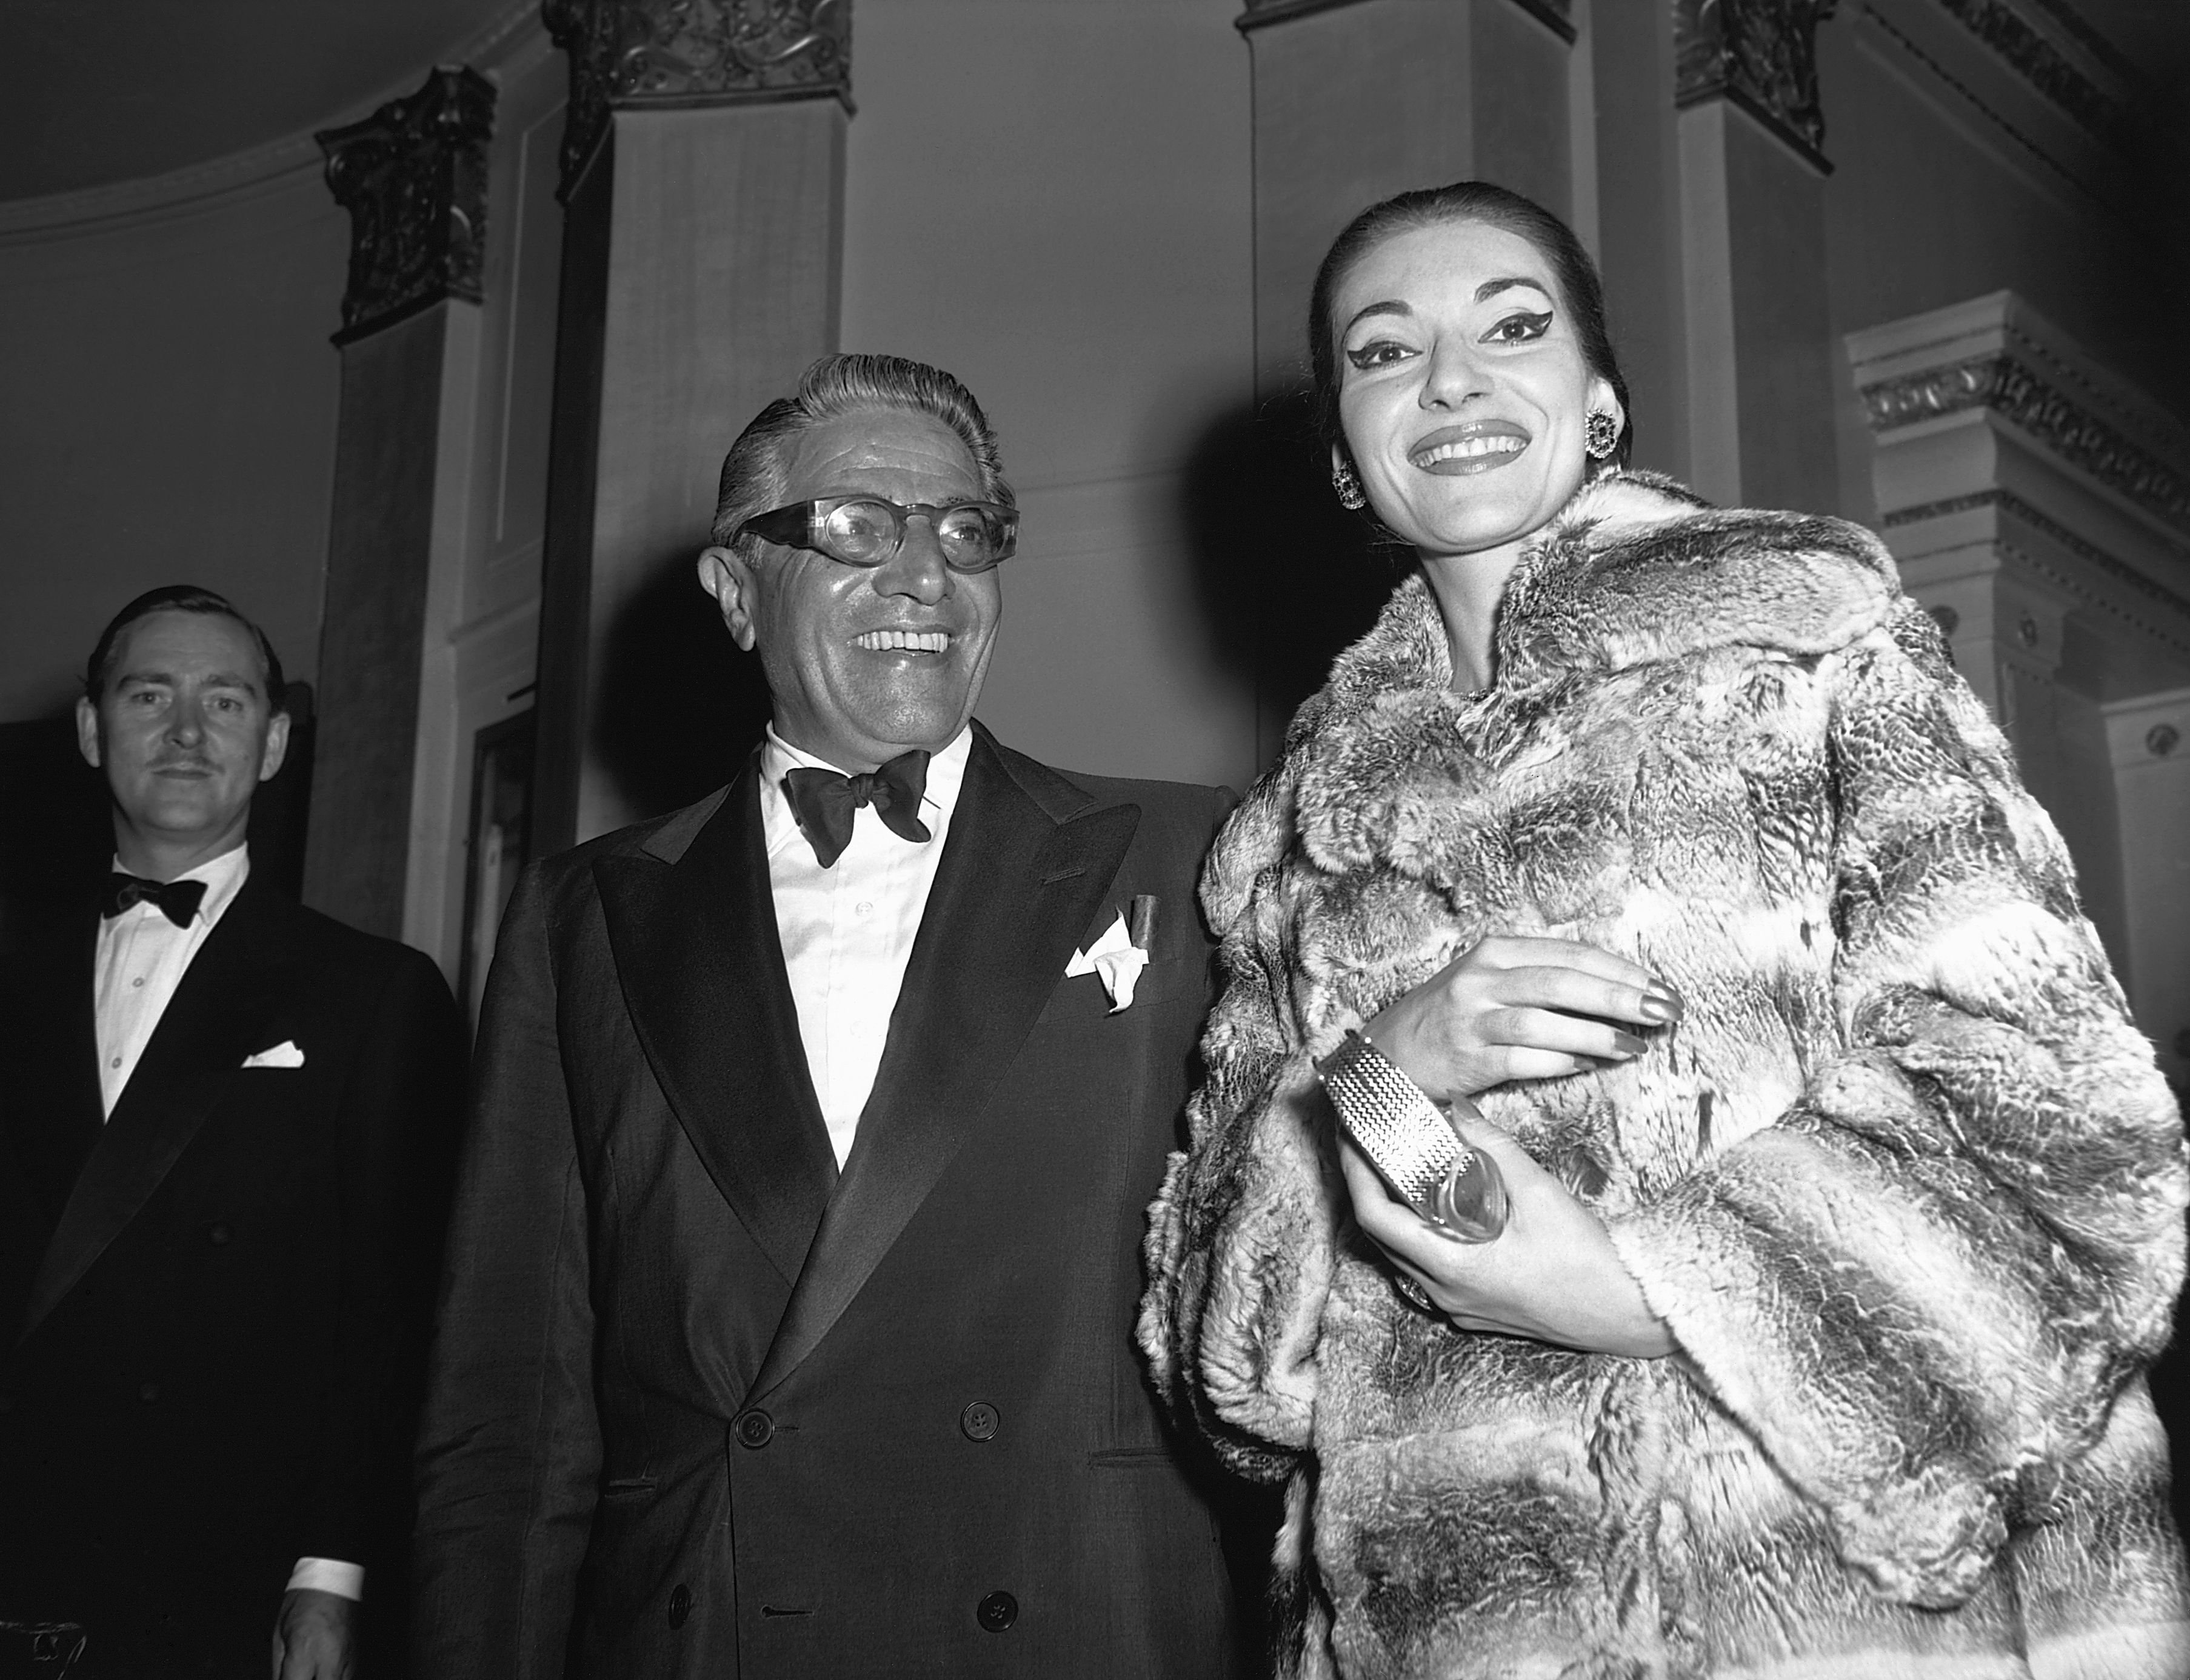 Greek shipping tycoon Aristotle Onassis with opera singer Maria Callas on June 21, 1959 | Photo: © Hulton-Deutsch Collection/Corbis/Getty Images